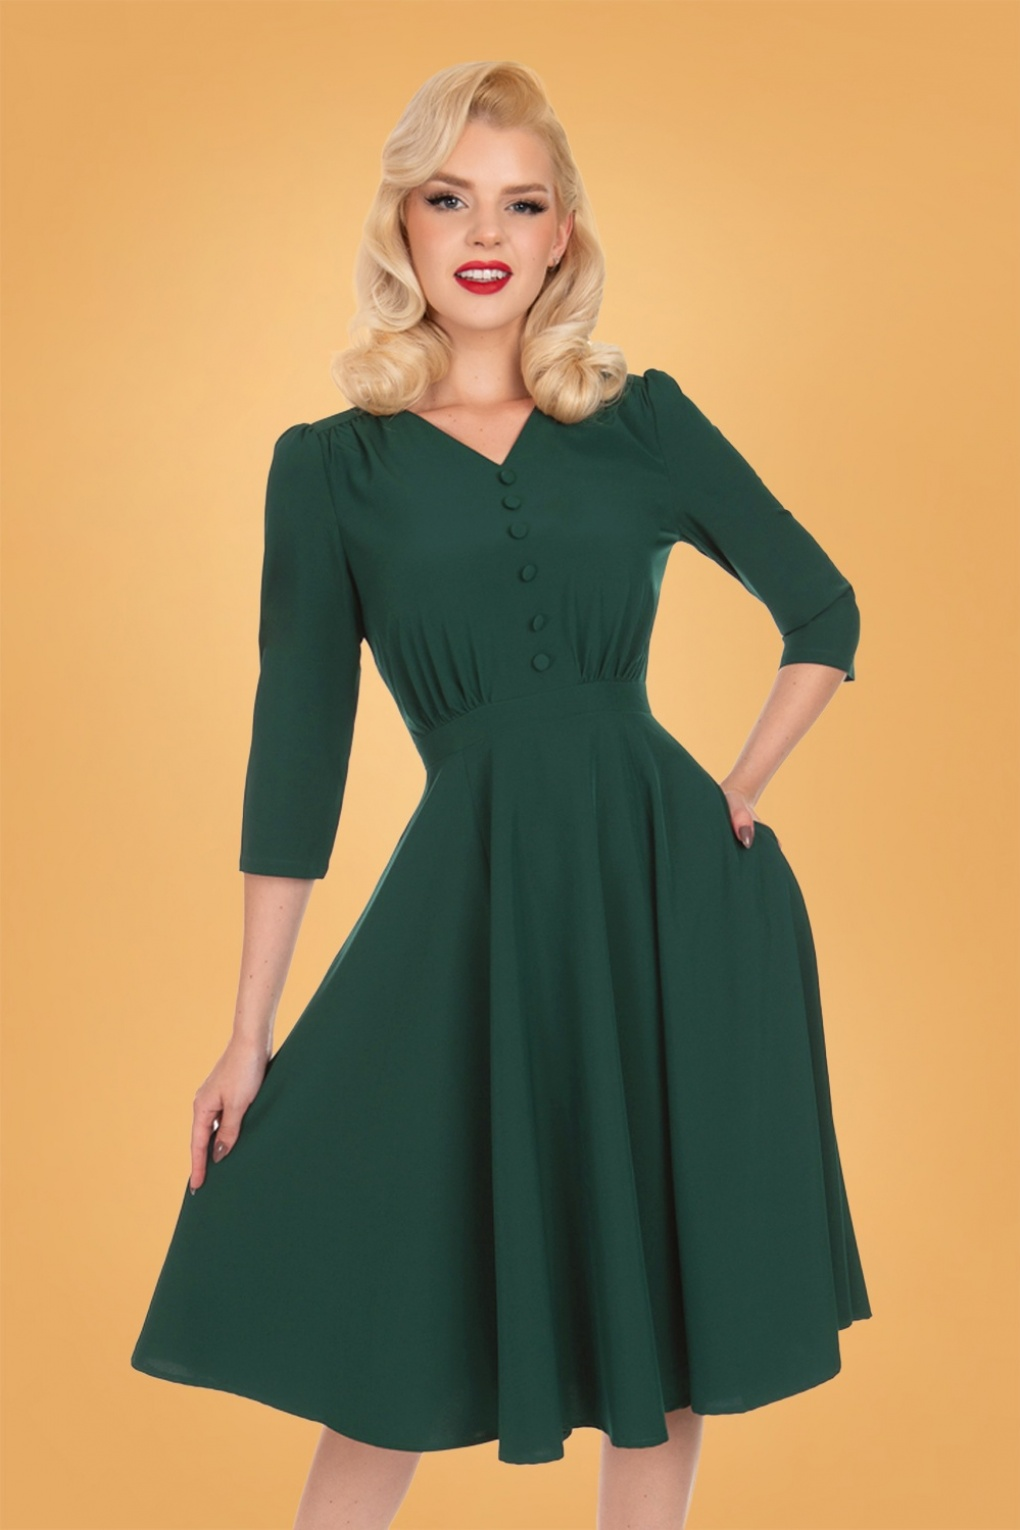 1930s Dresses | 30s Art Deco Dress 50s Verde Swing Dress in Dark Green £45.42 AT vintagedancer.com